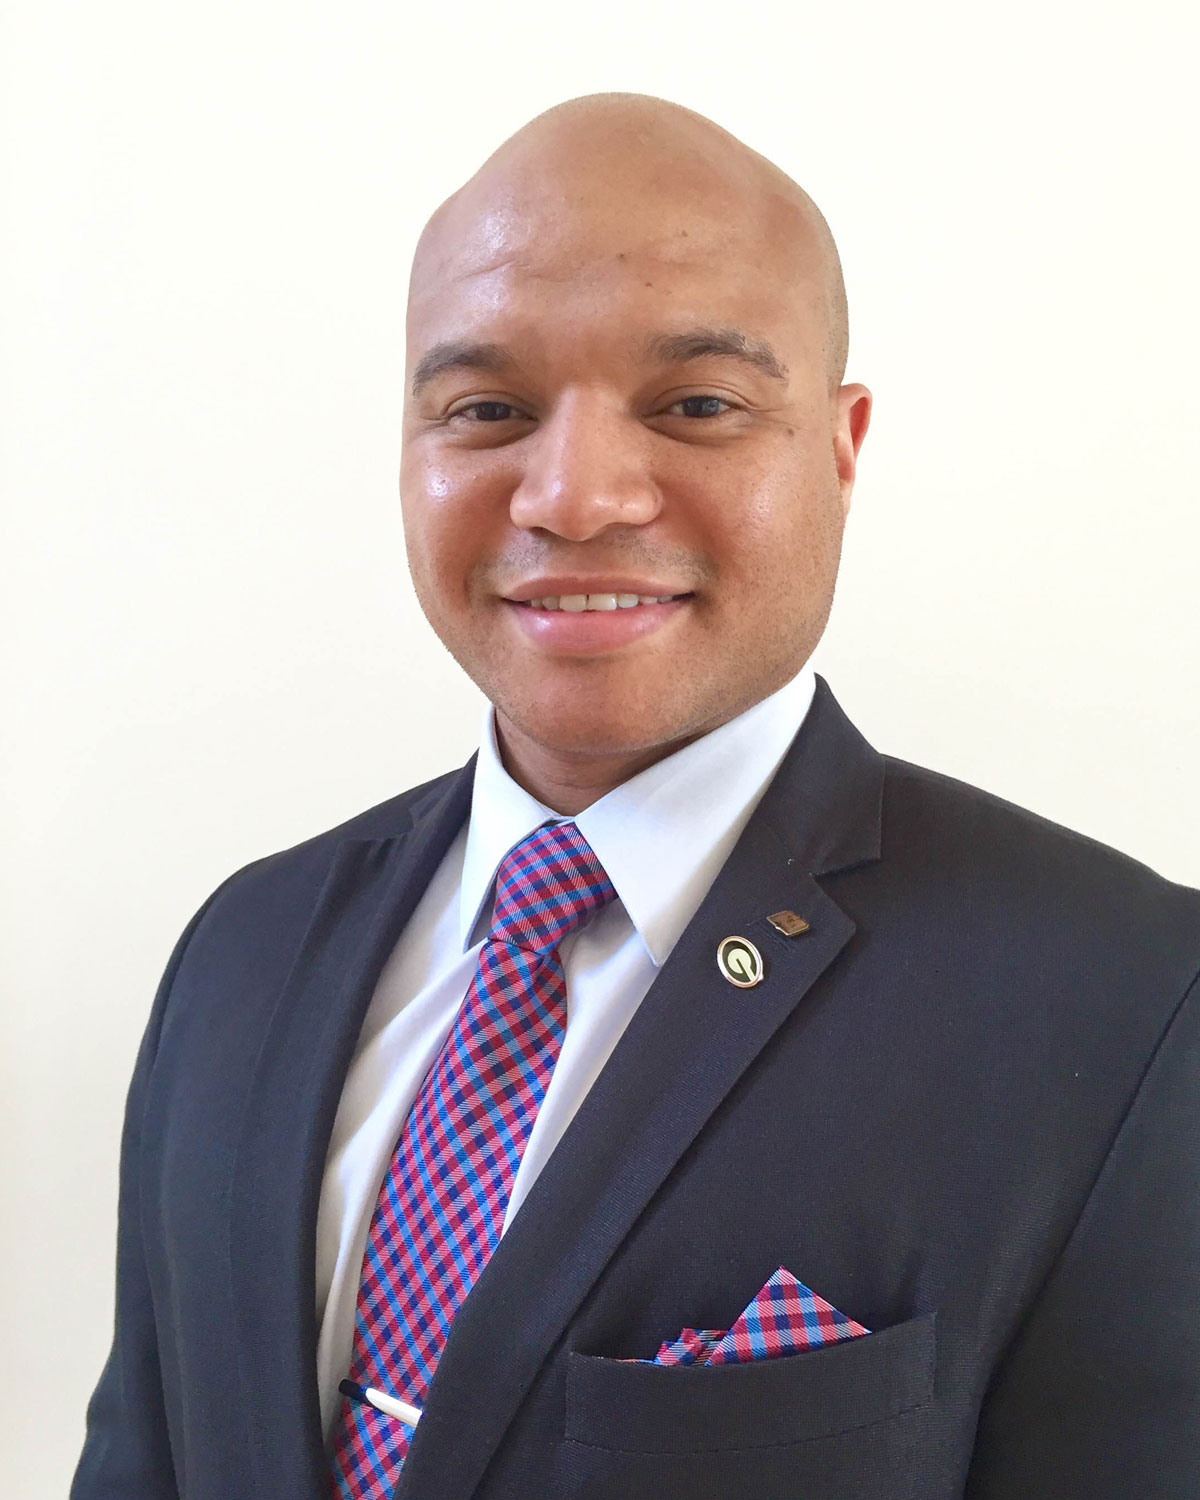 Professional headshot photograph Abdul Walters wearing a suit